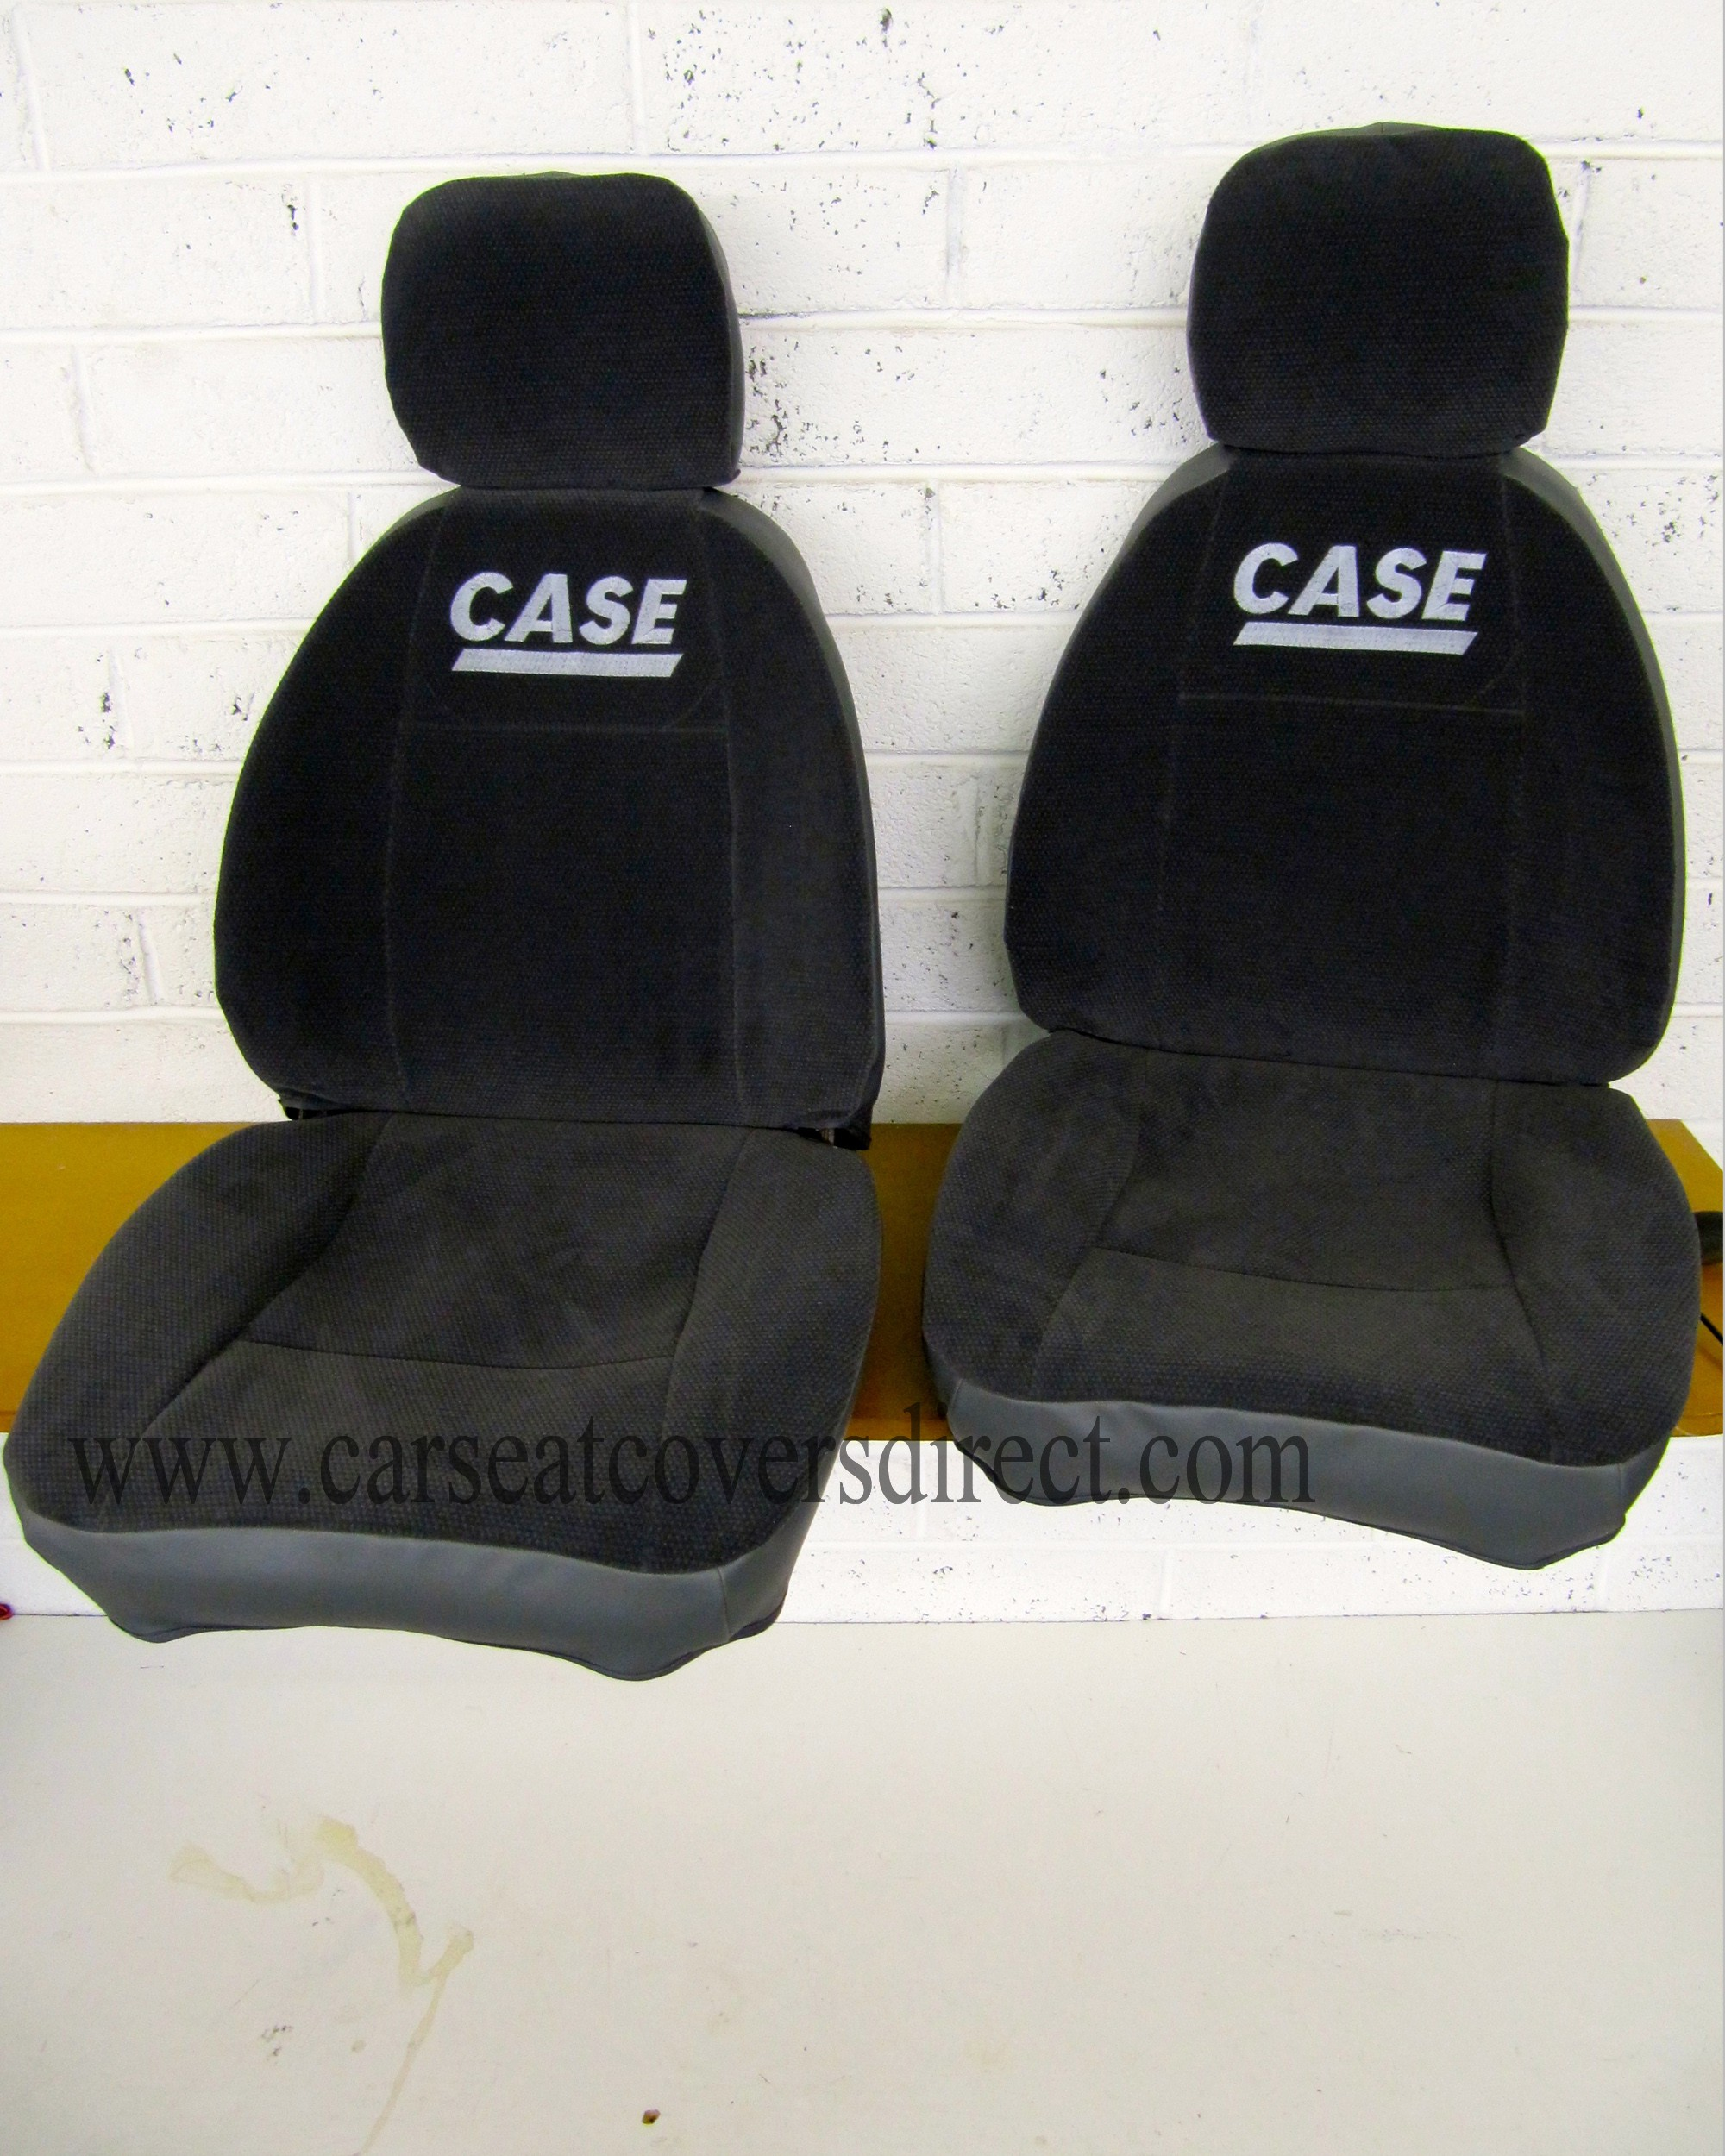 PAIR OF CUSTOM JCB CASE POCLAIN SEAT COVERS